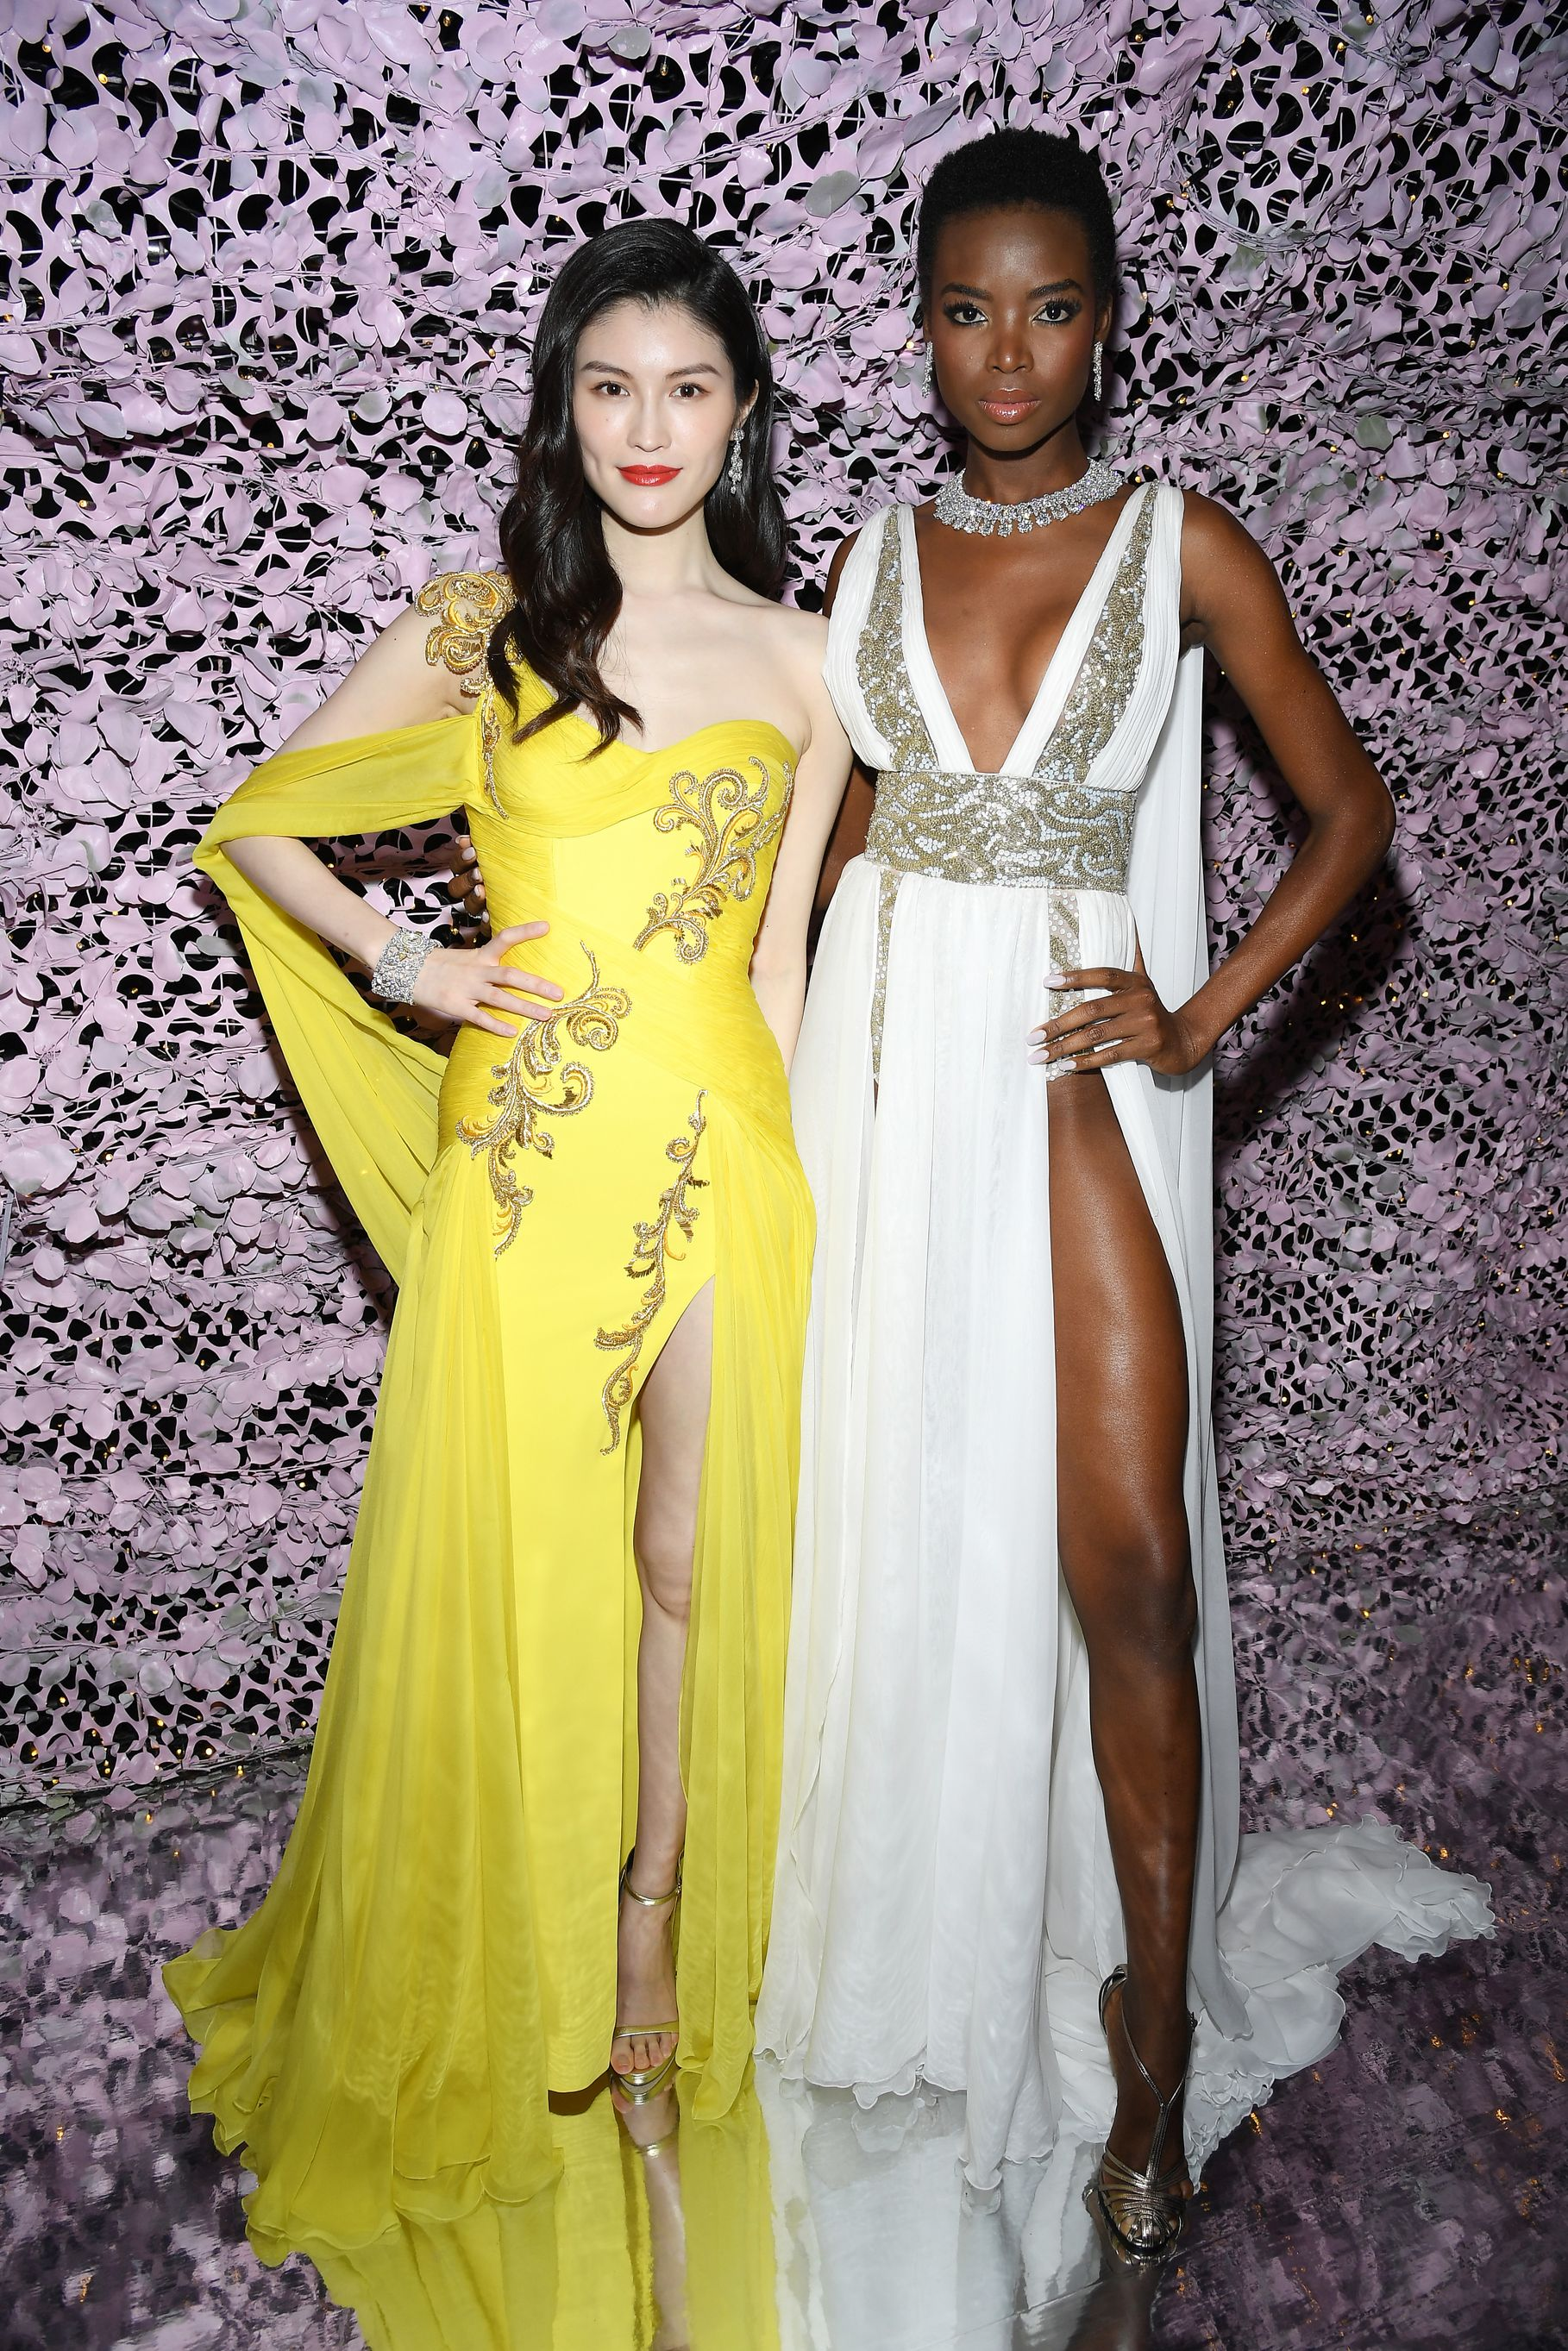 Models Sui He and Maria Borges at Chopard LOVE Night. Image: Courtesy Chopard